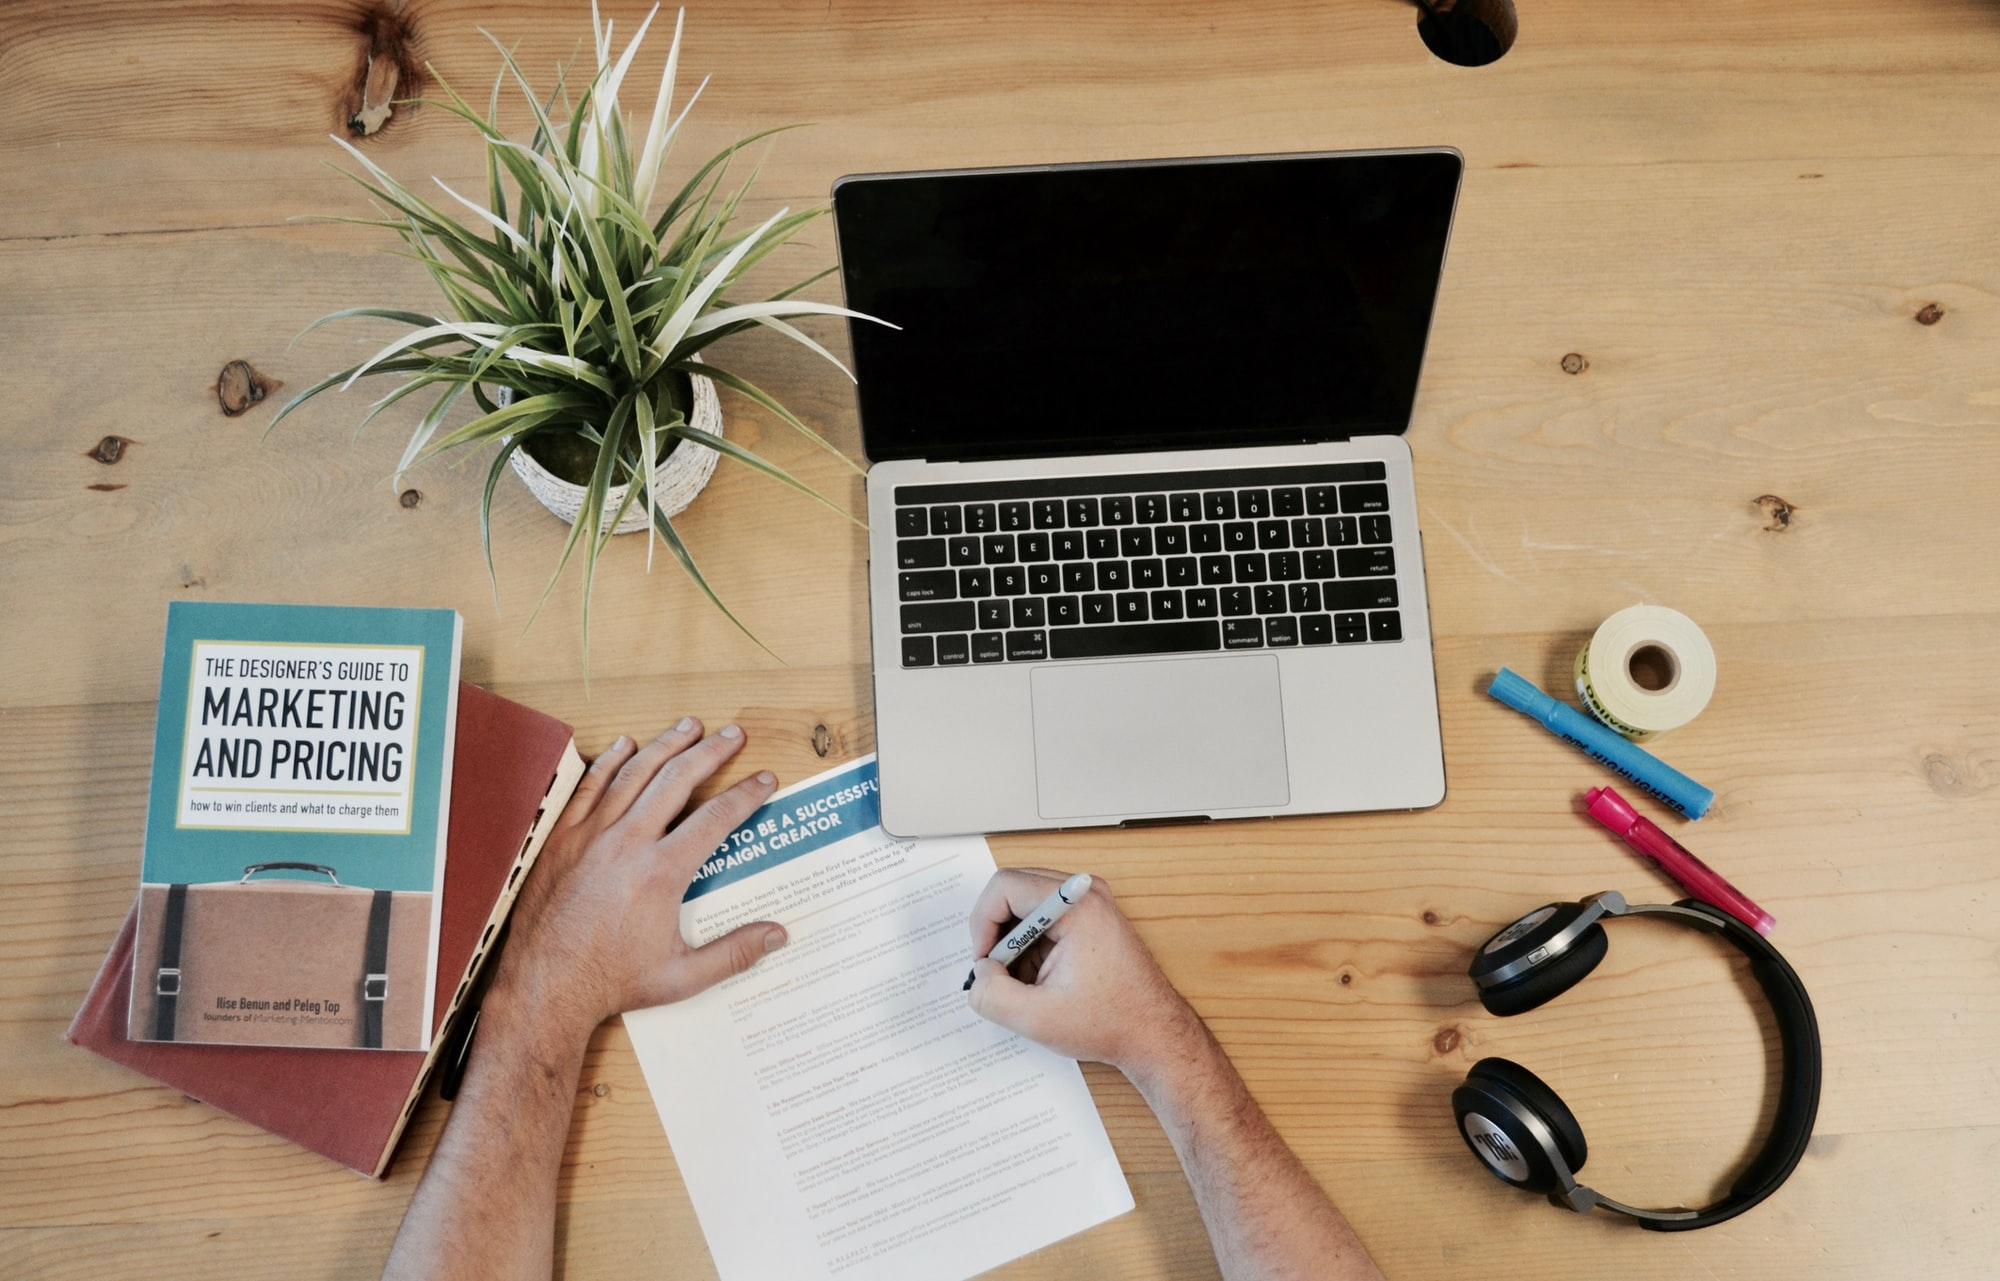 Shopify Social Media Marketing: 5 Tips to Promote Your Online Fashion Store